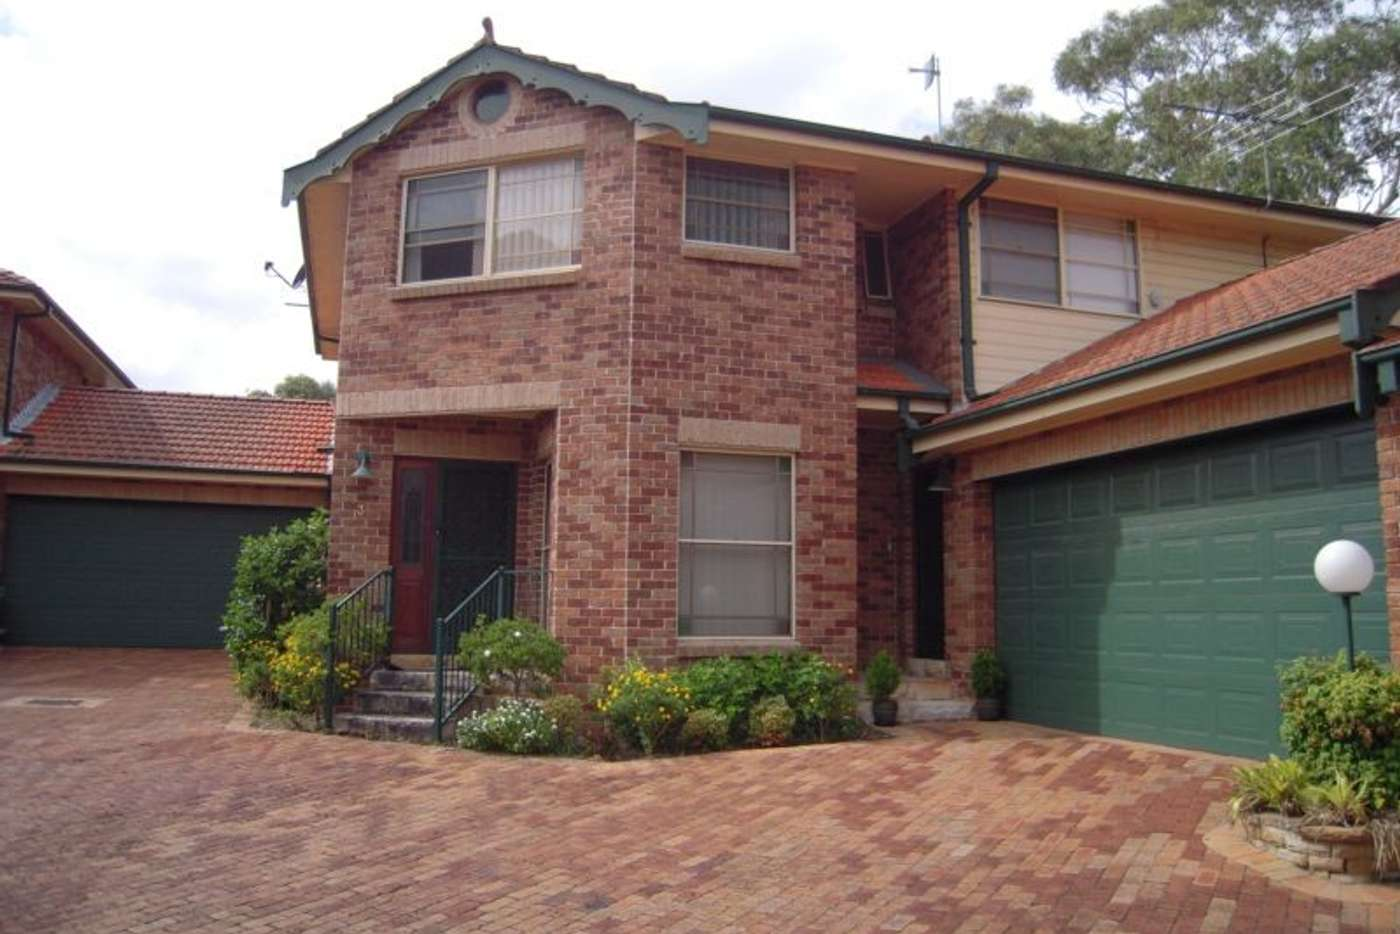 Main view of Homely townhouse listing, 3/26 Vista Street, Caringbah NSW 2229